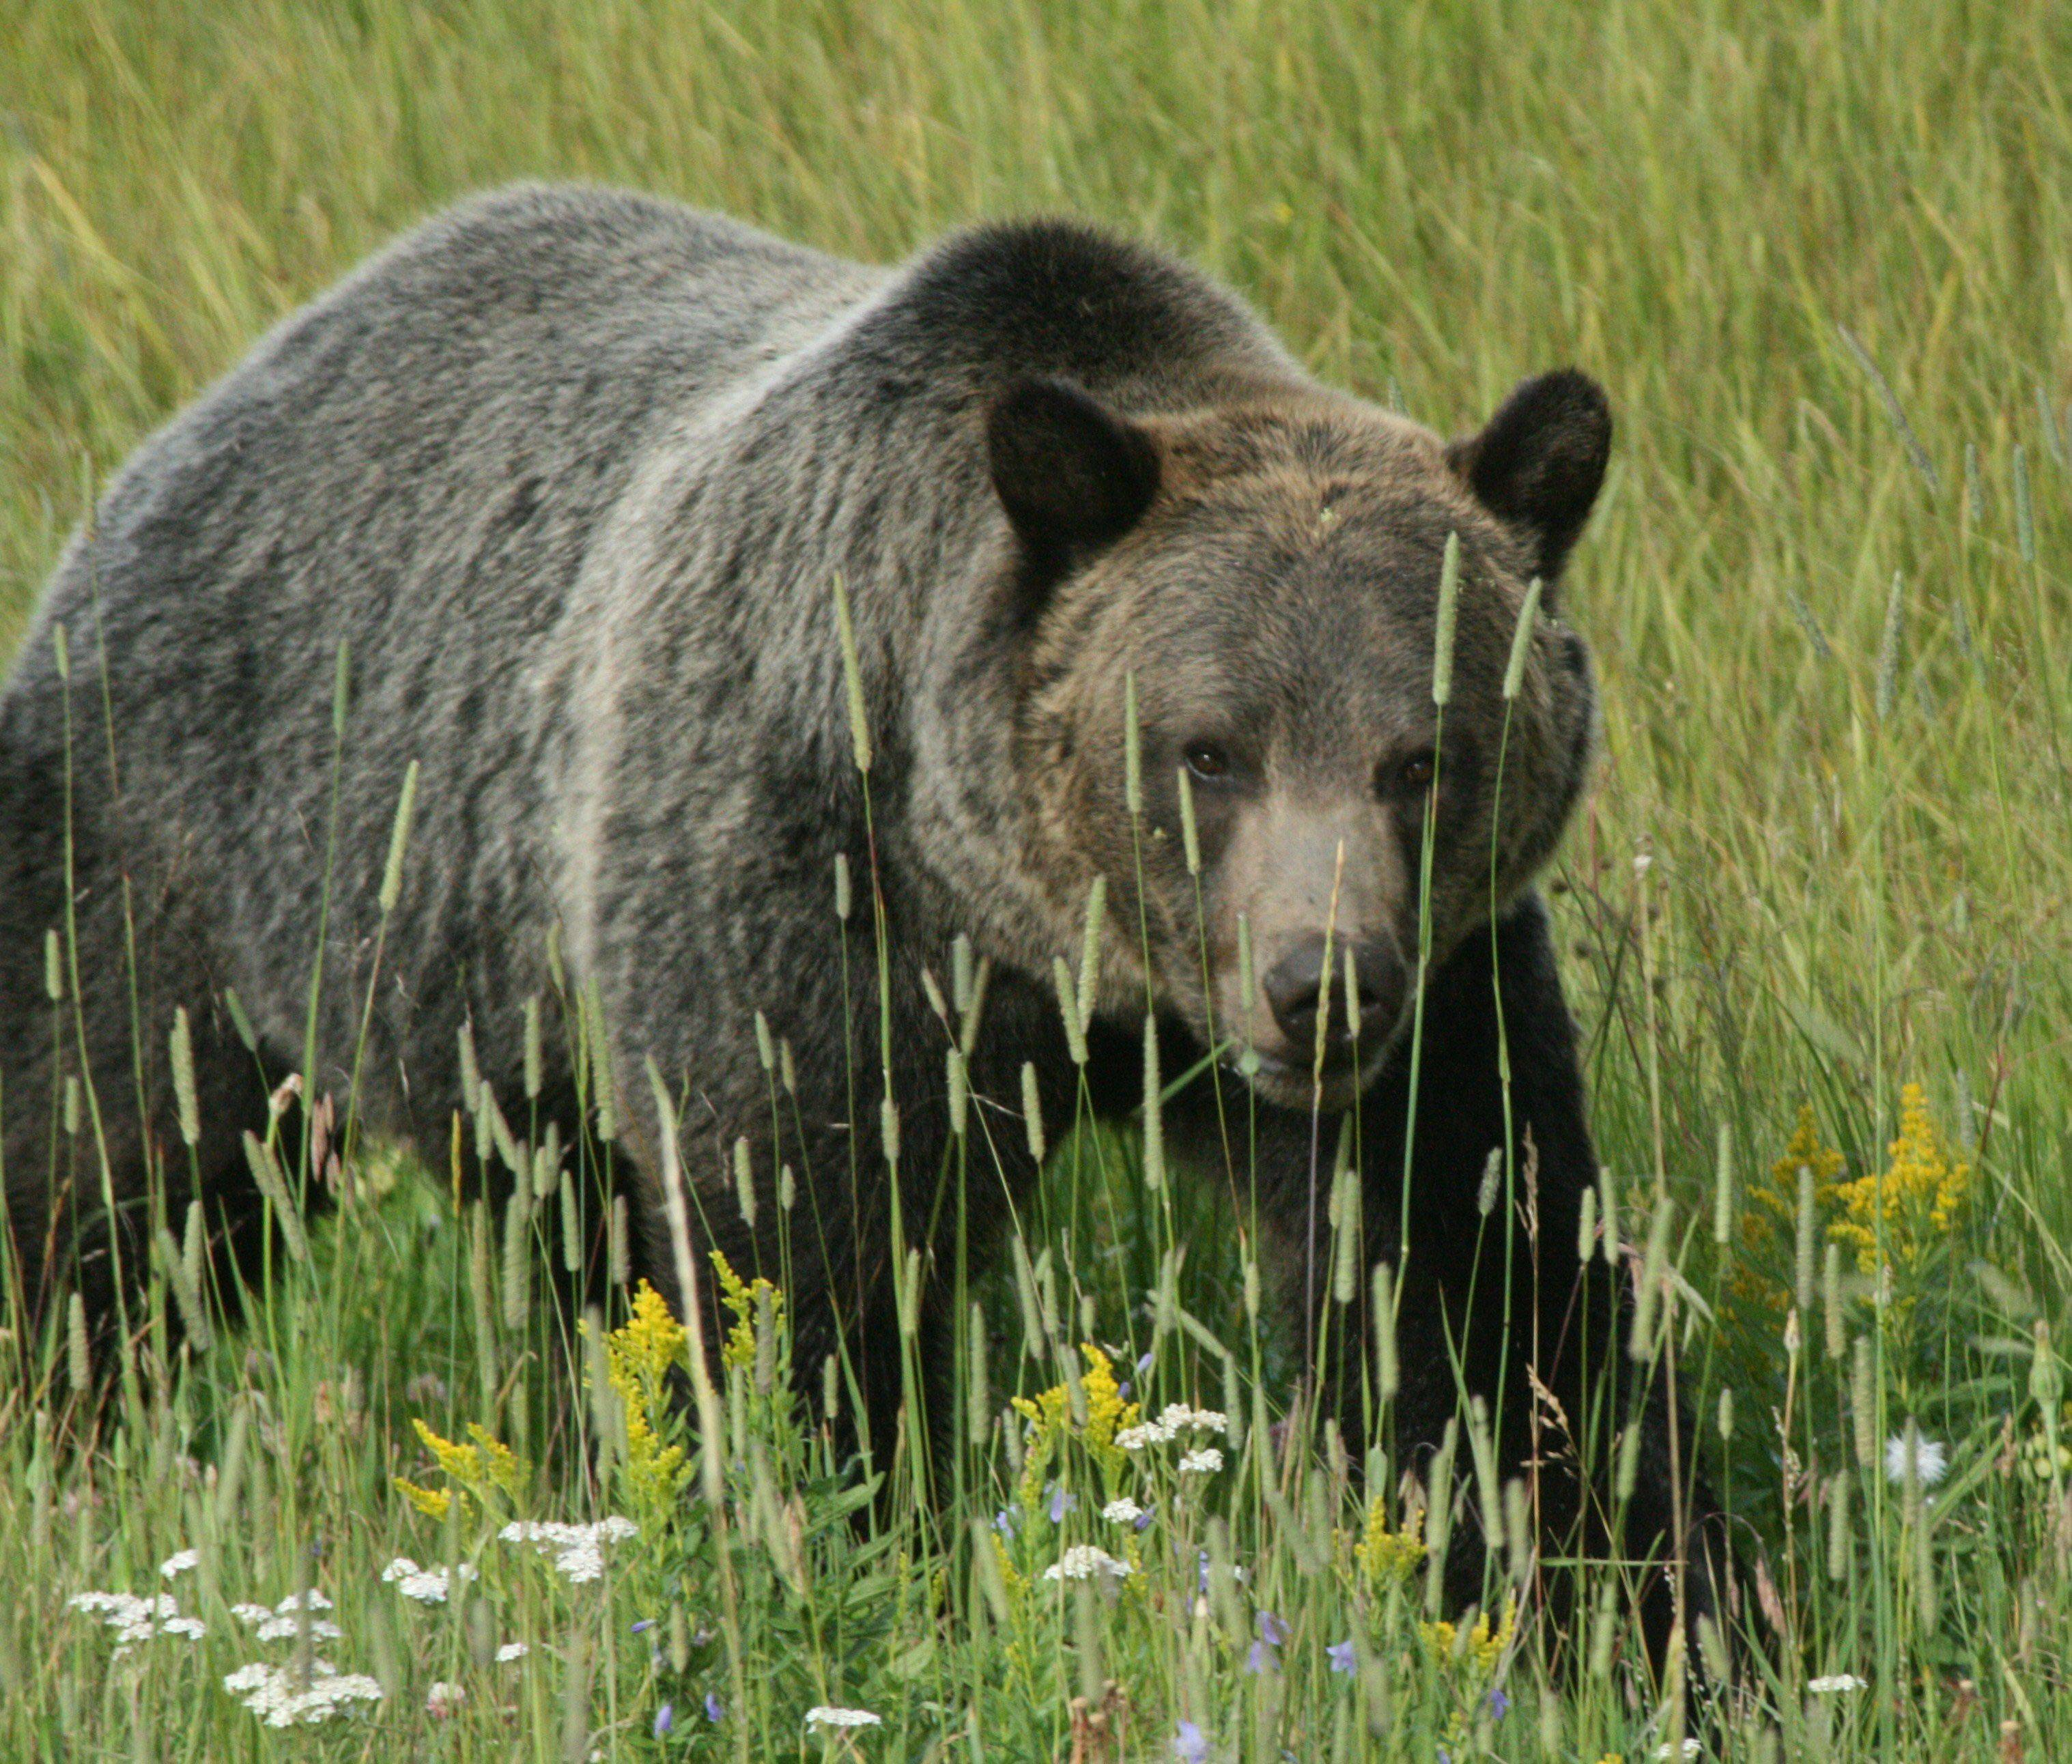 A grizzly bear moves through the brush in the Lamar Valley of Yellowstone National Park this past August.